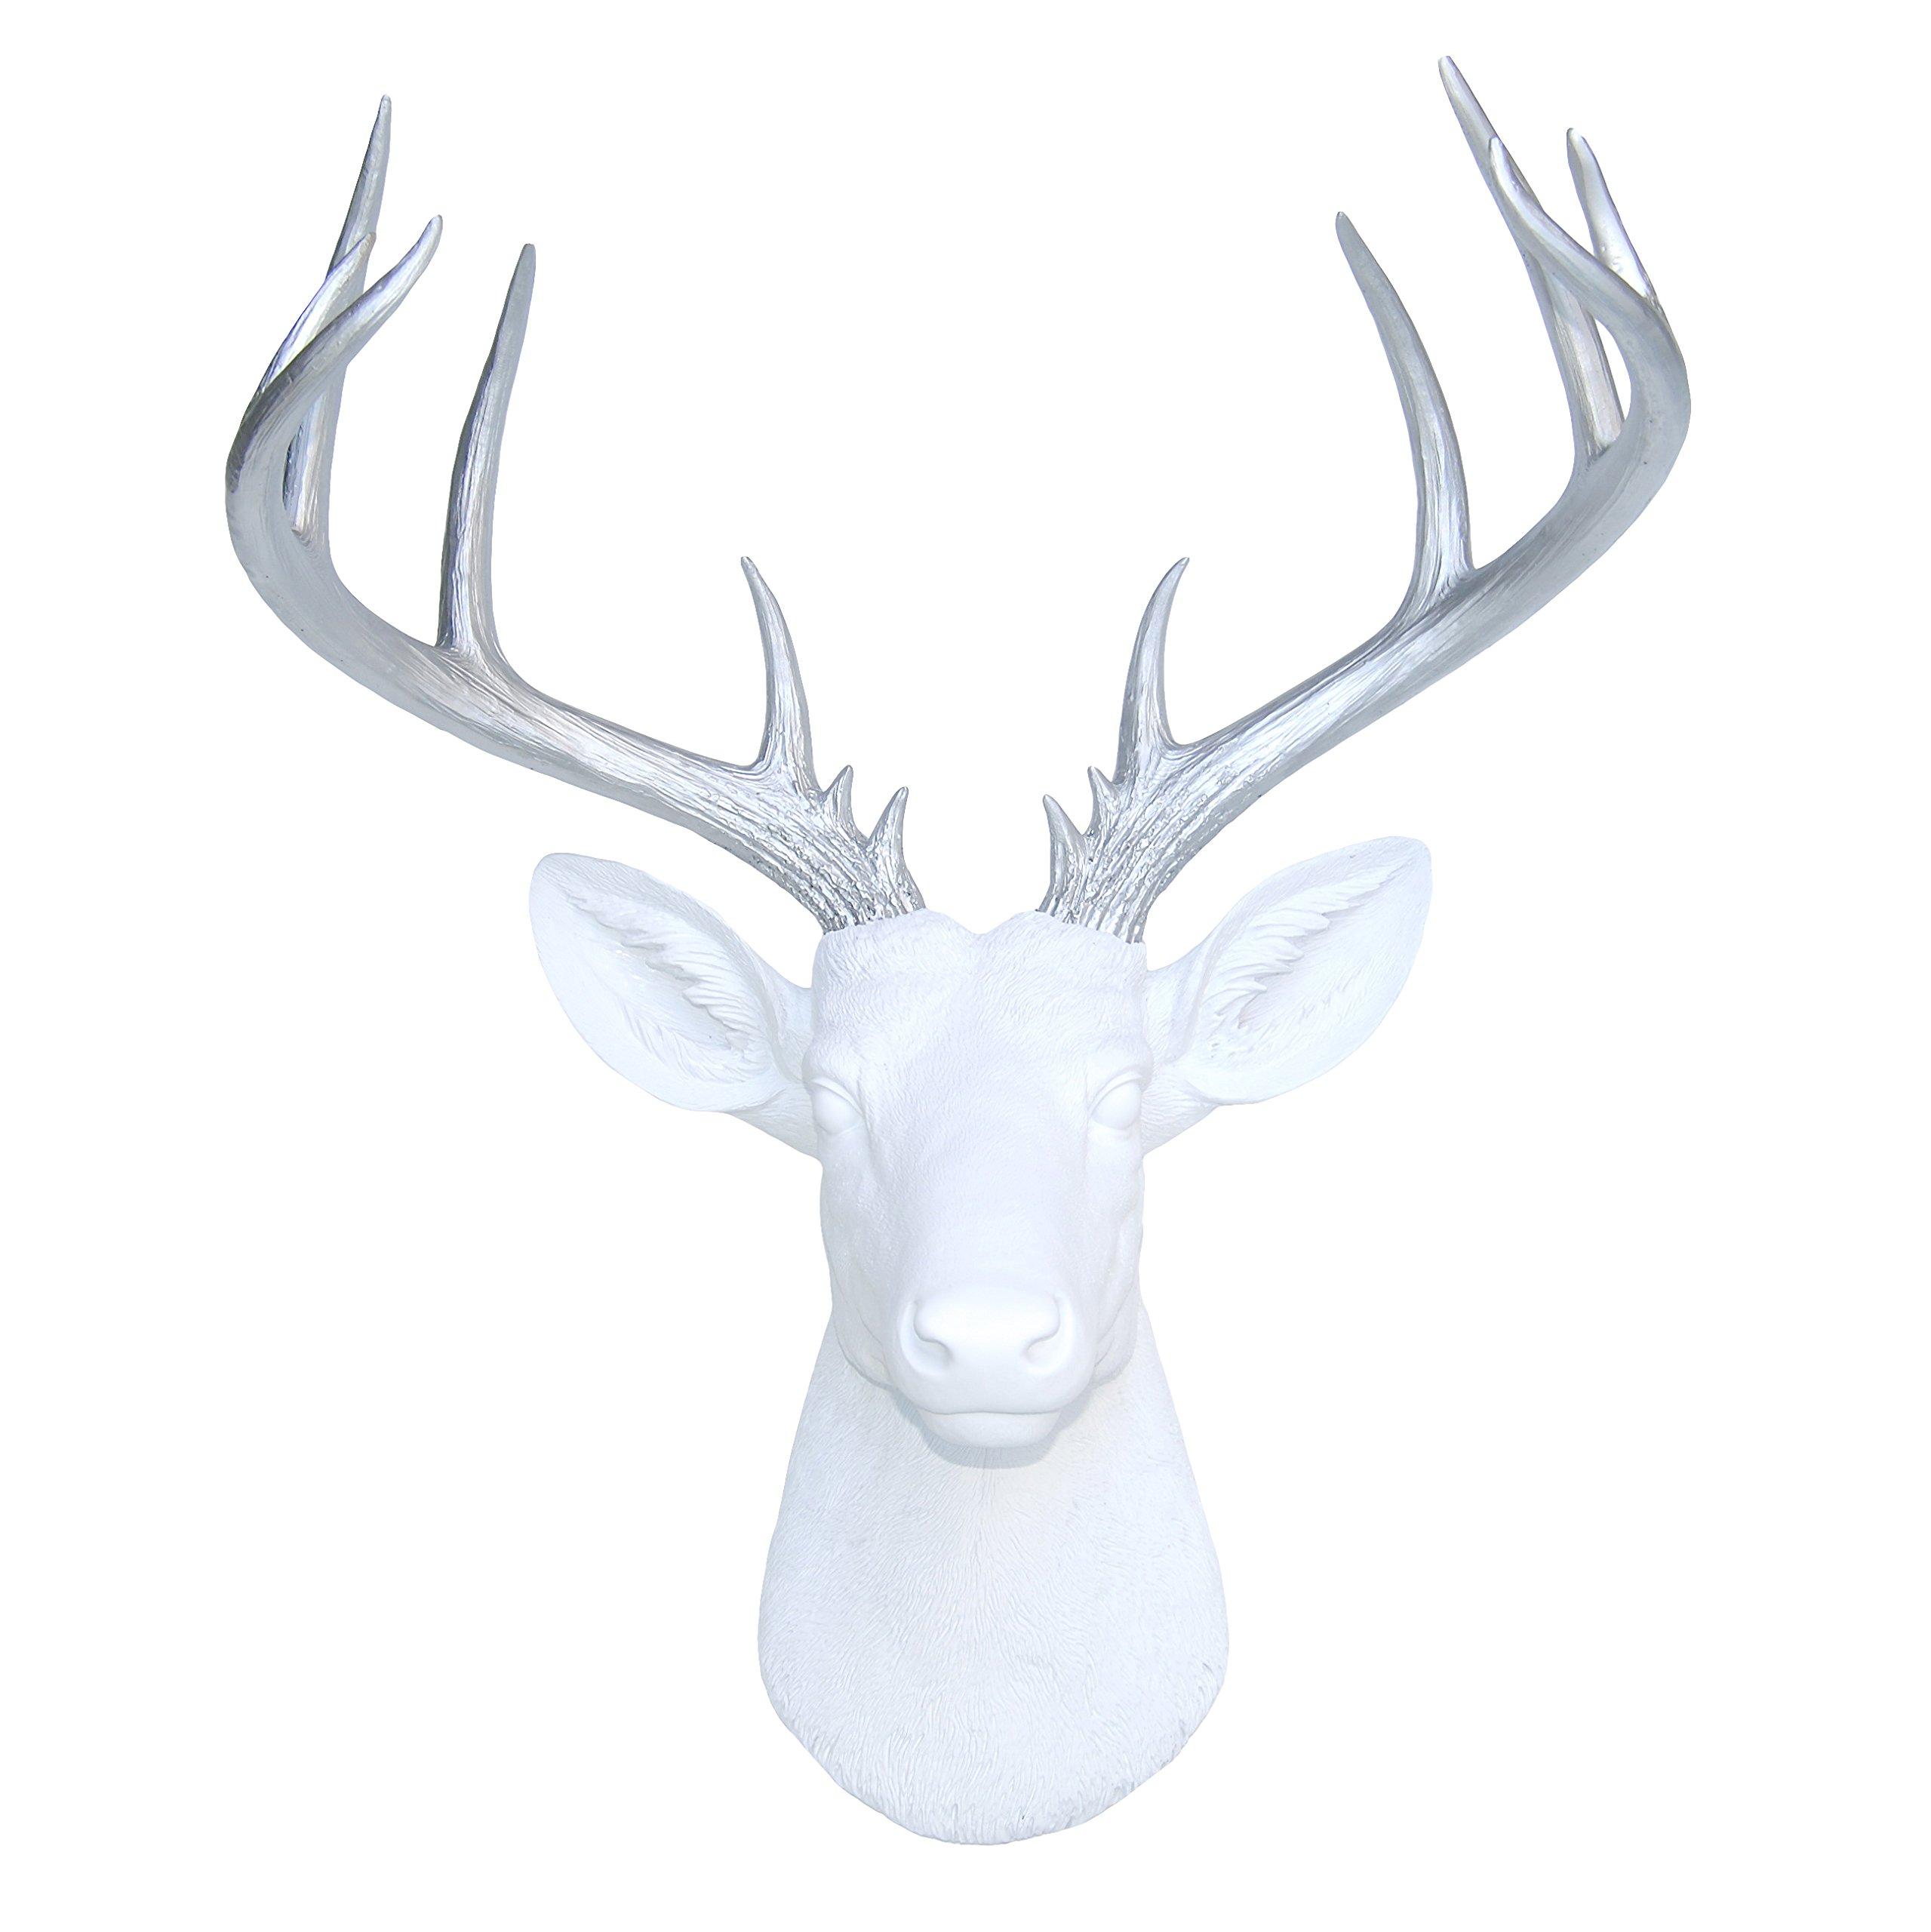 Near and Deer ND0110 Faux Taxidermy 14 Point Deer Head Wall Mount, White/Silver by Near and Deer